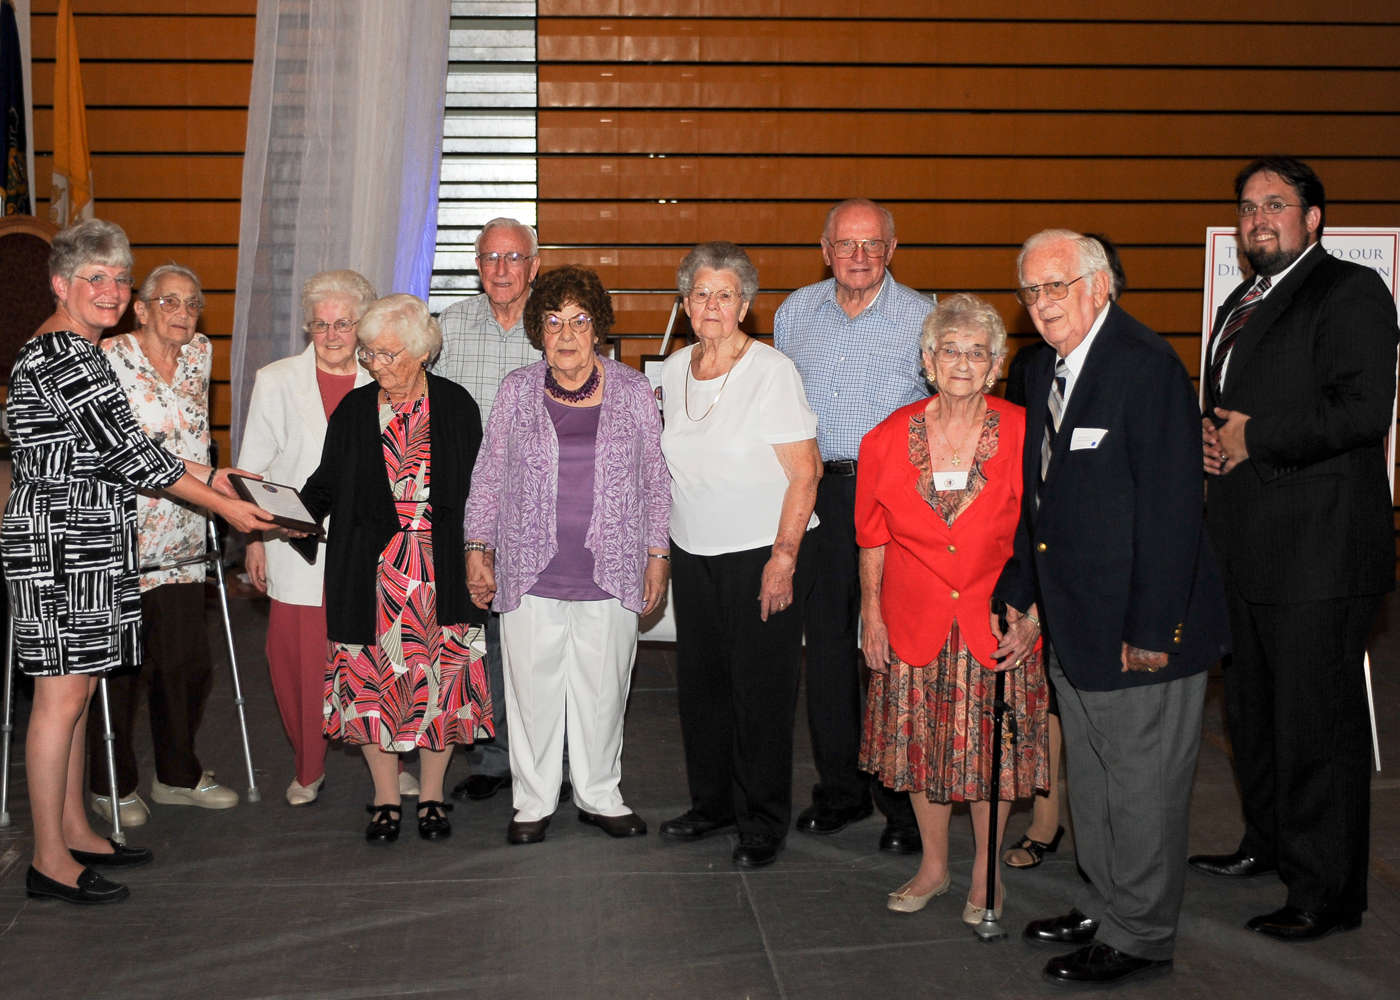 Members of the Delone Catholic Classes of 1941-1944, the first to directly benefit from Mr. Delone's gift, accepted induction on his behalf.